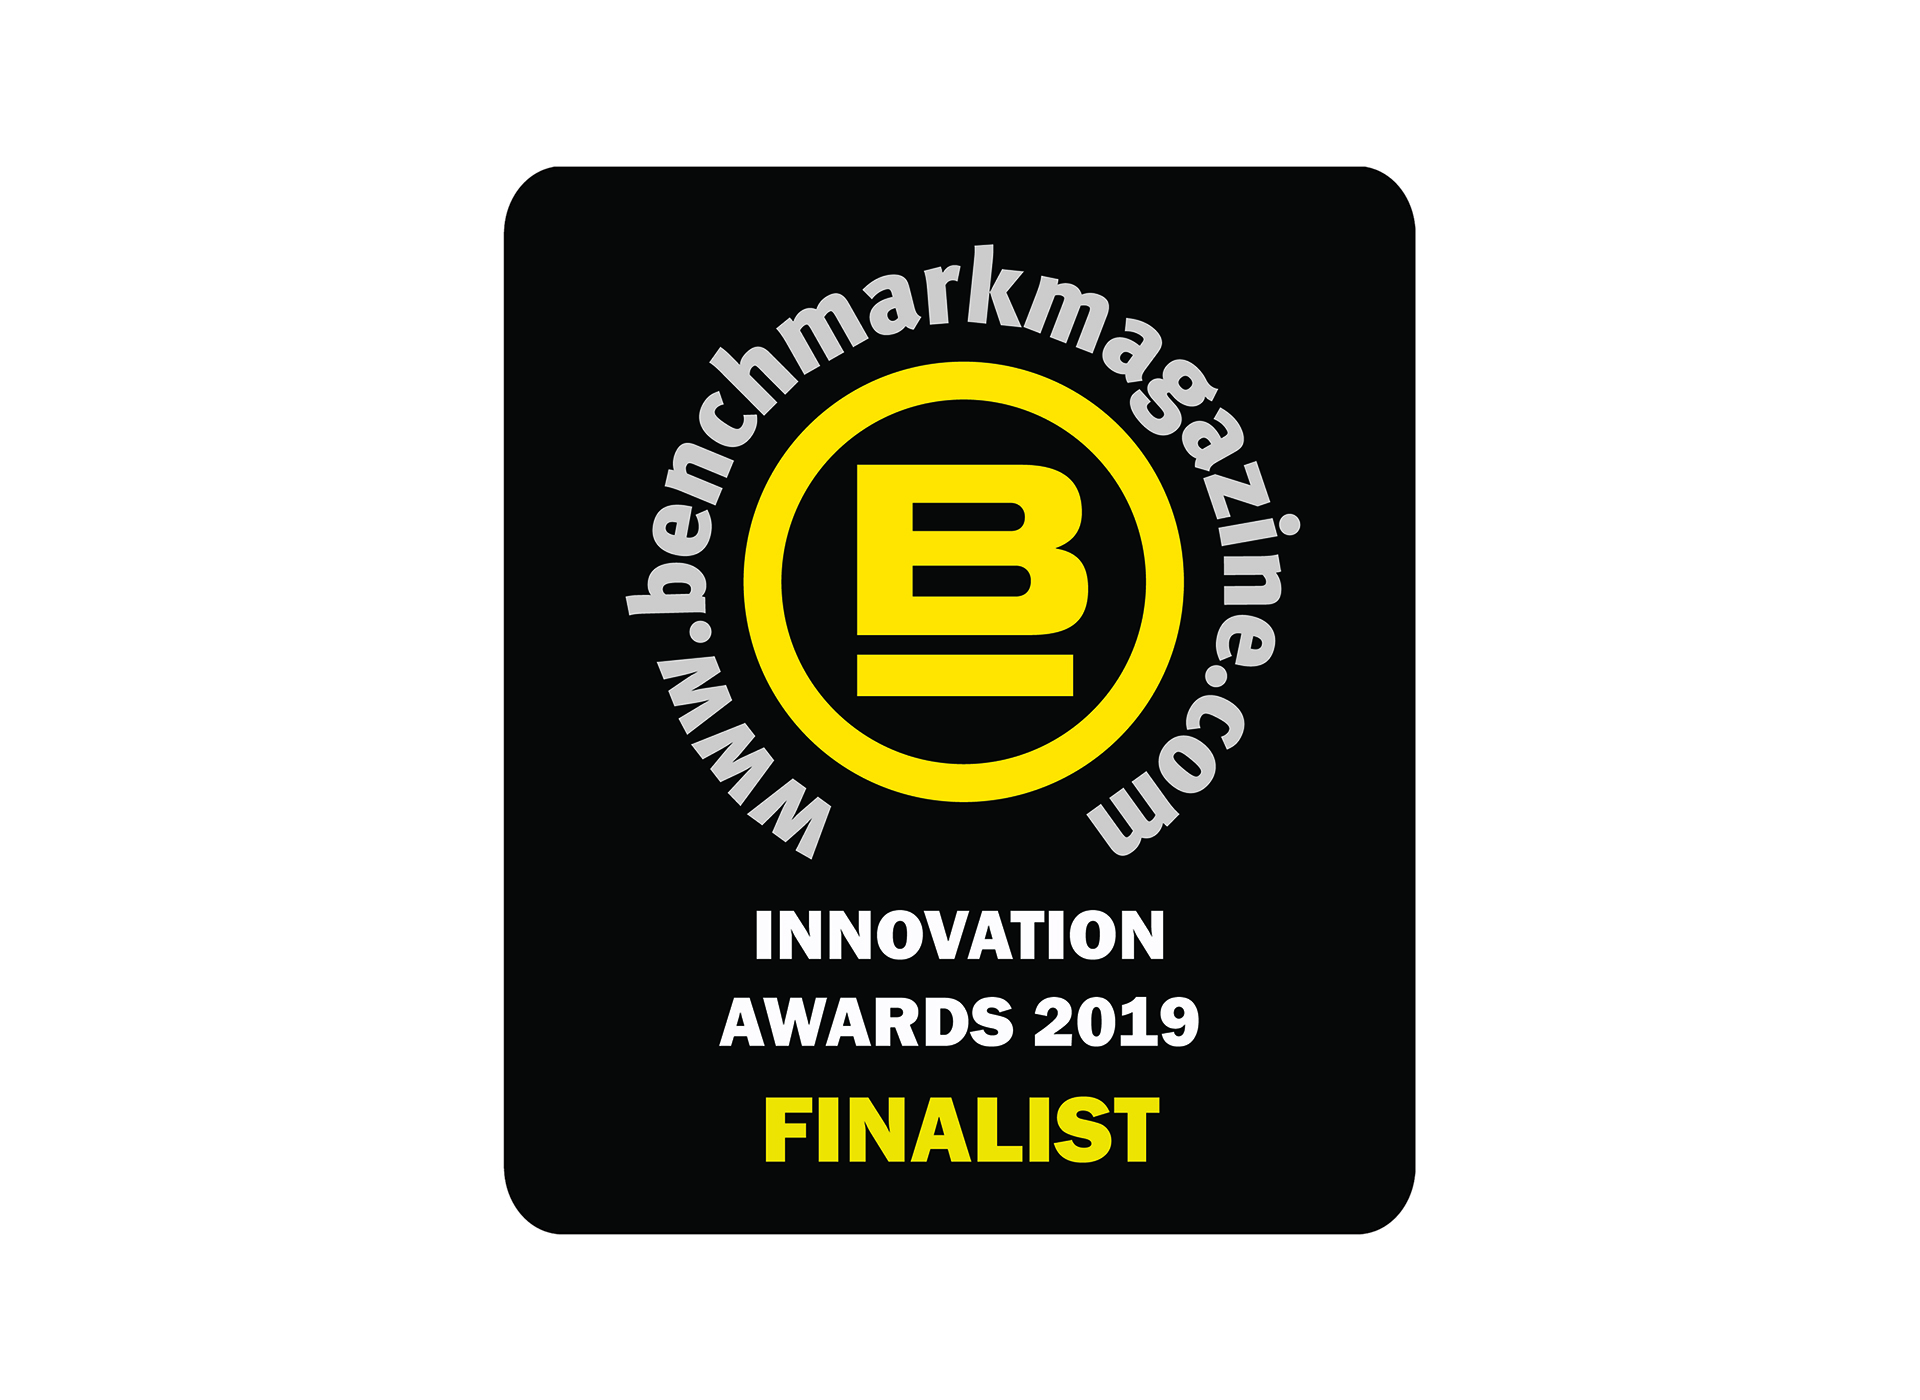 Finalist for the Benchmark Innovation Award 2019